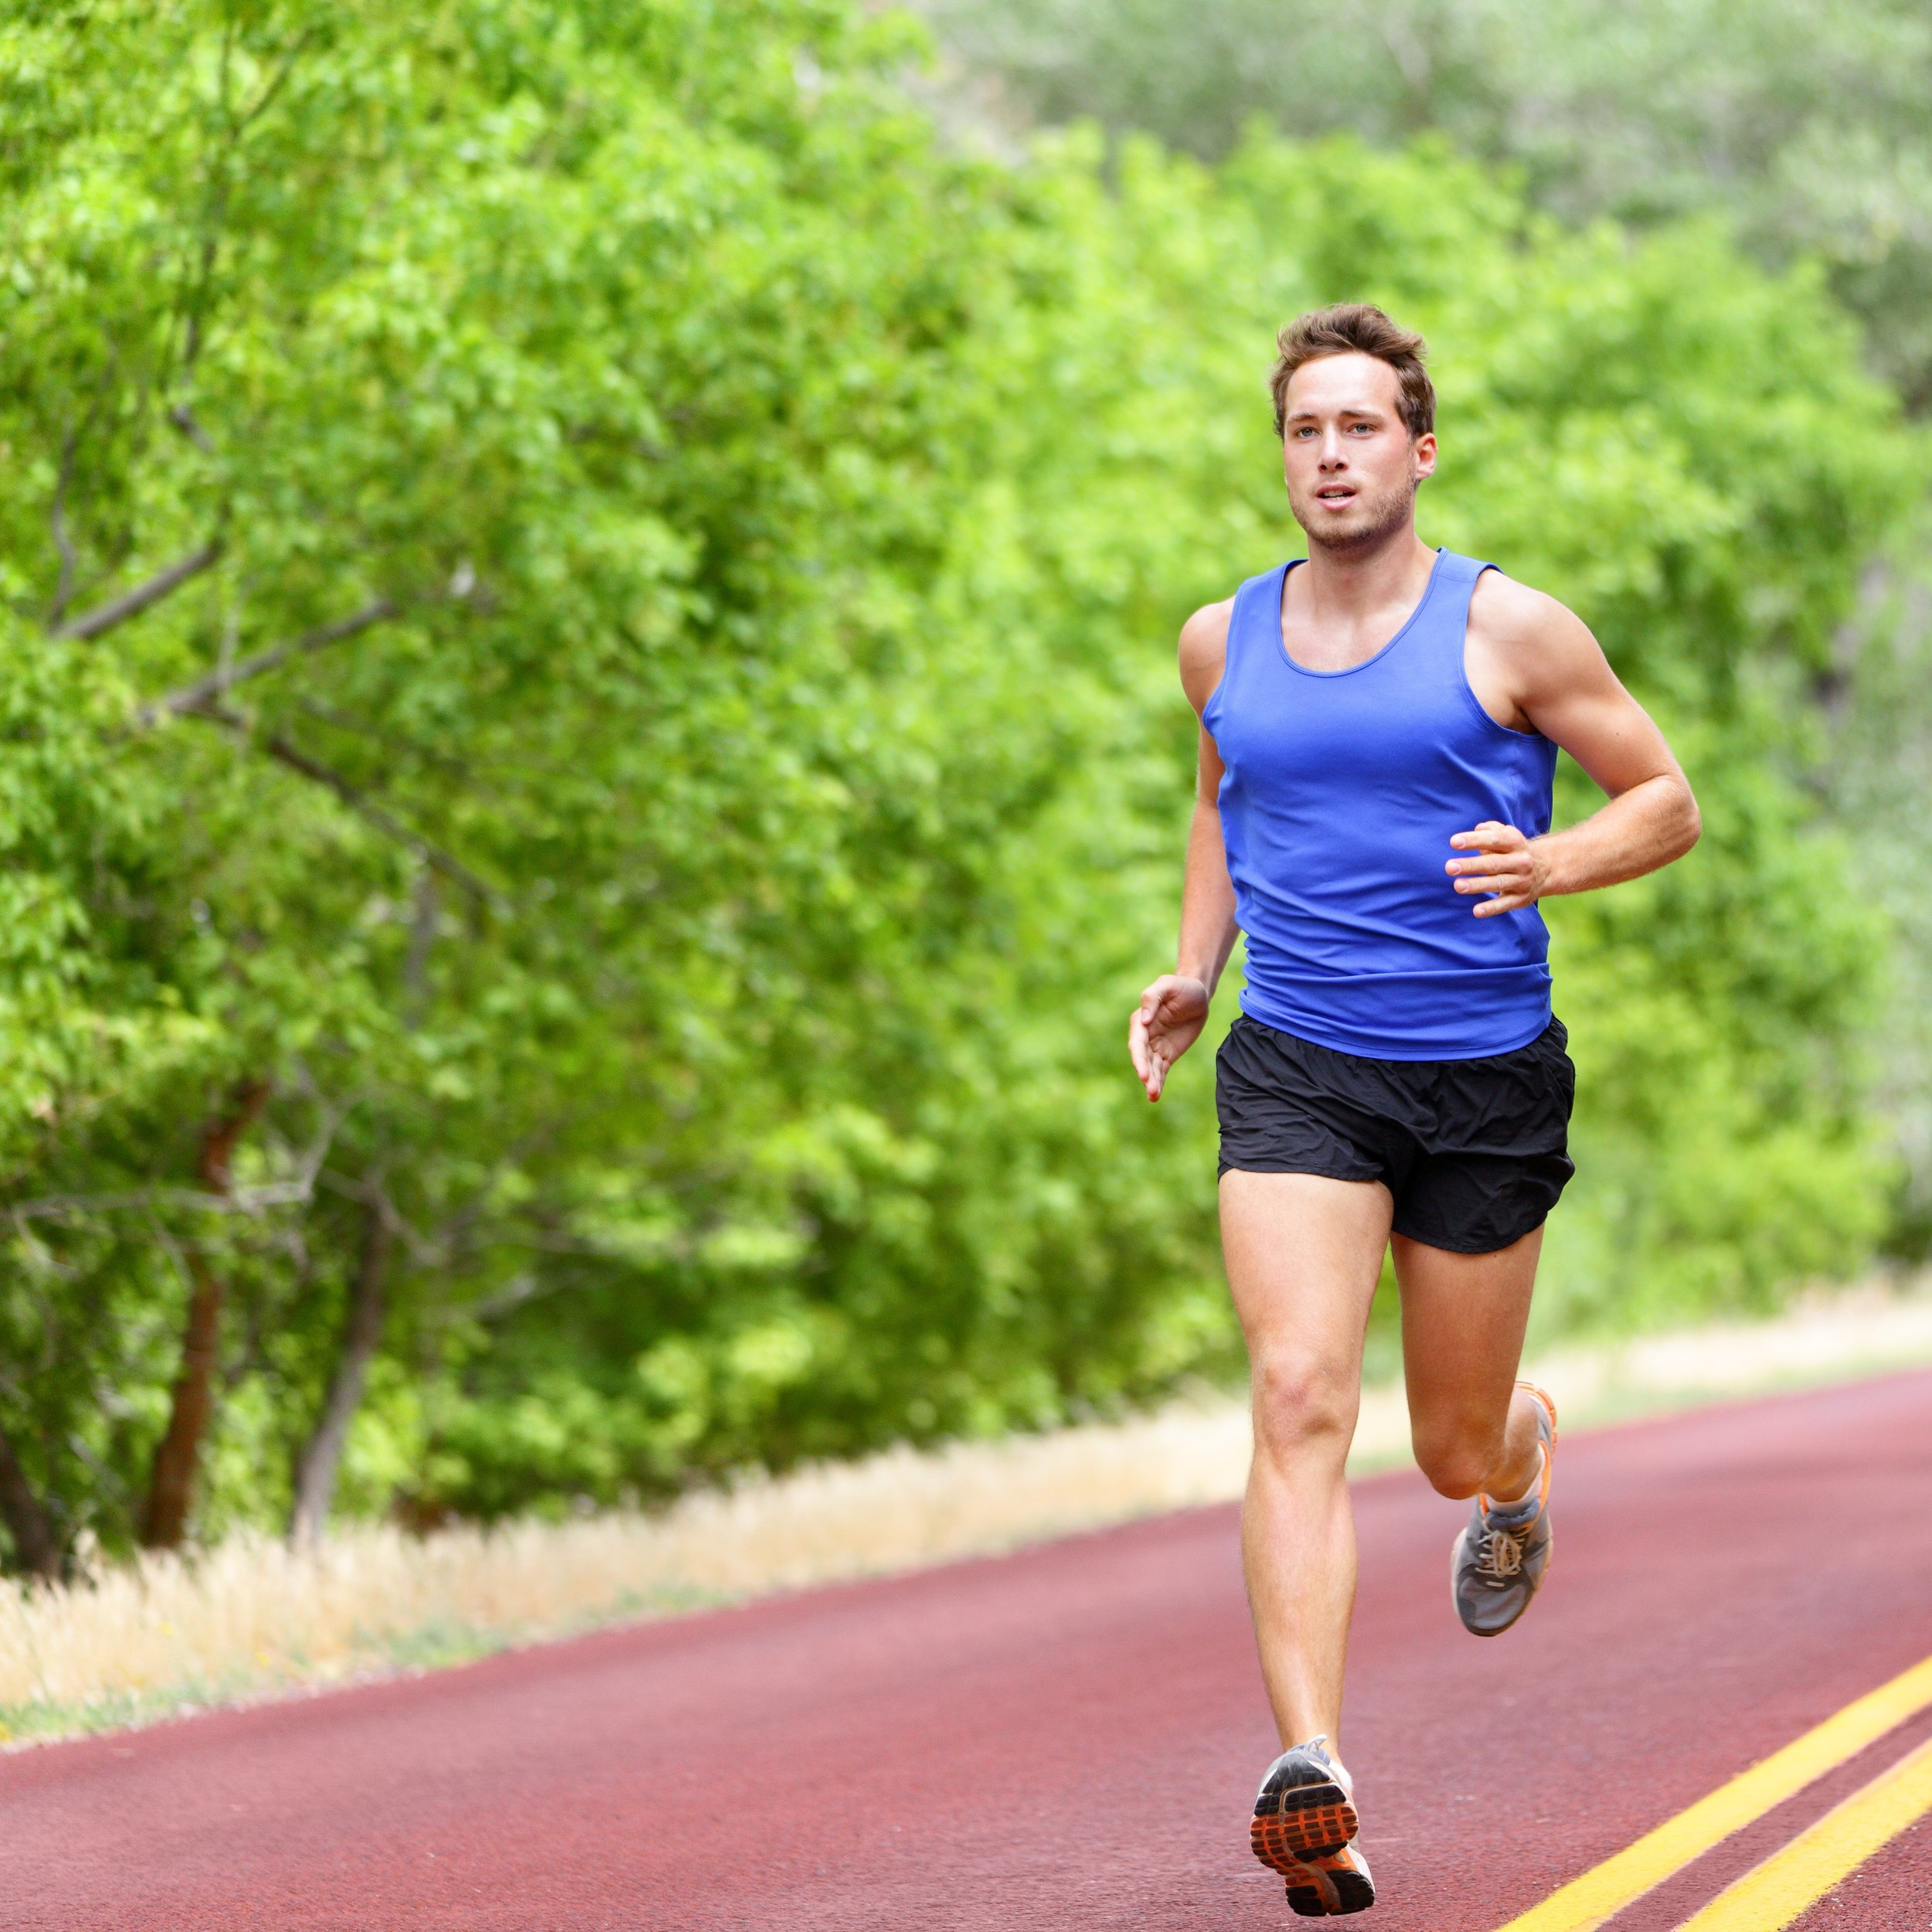 The Running Athlete: Assessment, Retraining & Rehabilitation - with kevin leiberthal